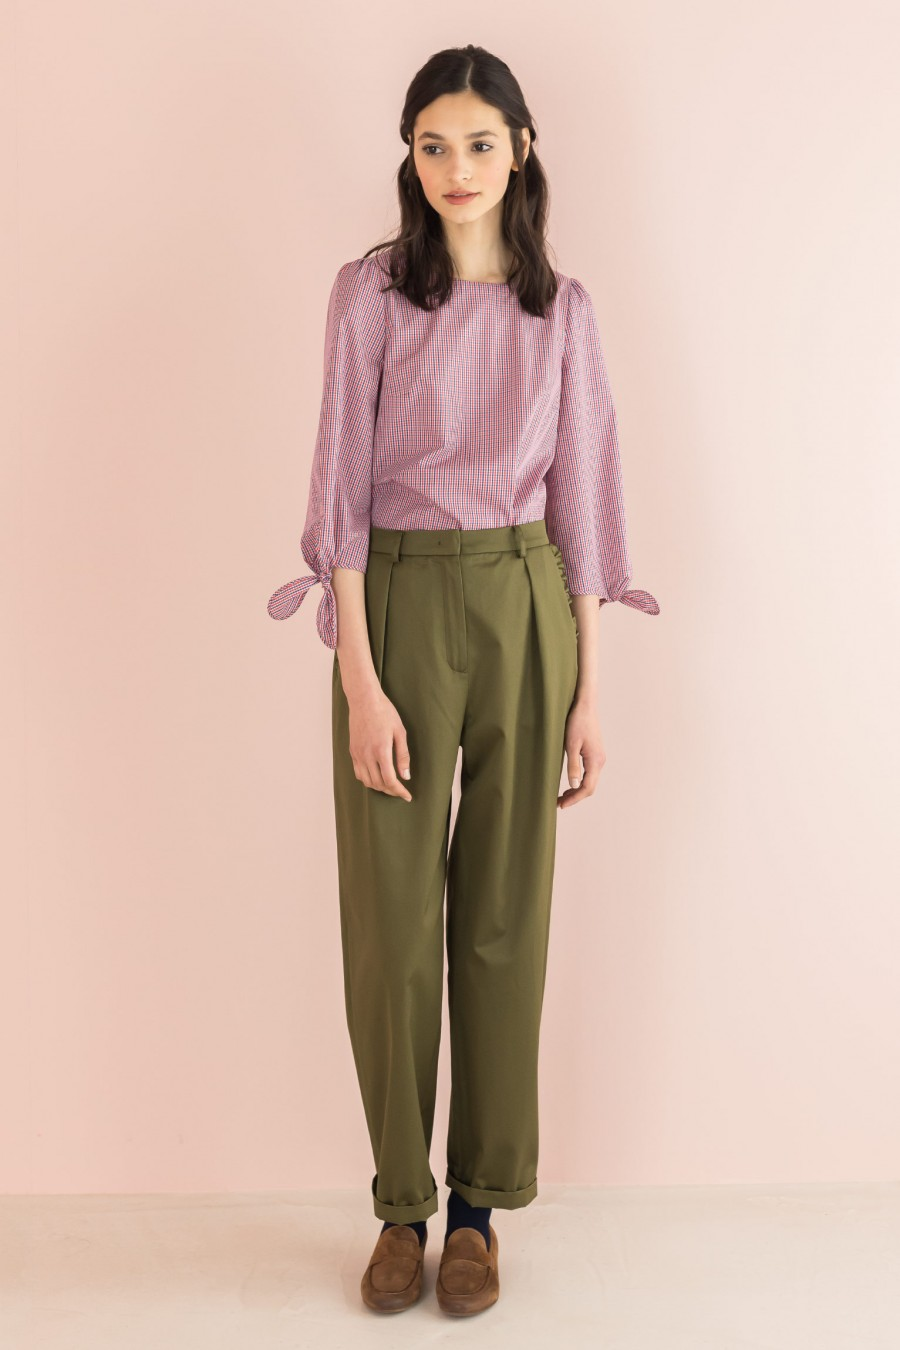 military egg-shaped trousers with ruffles